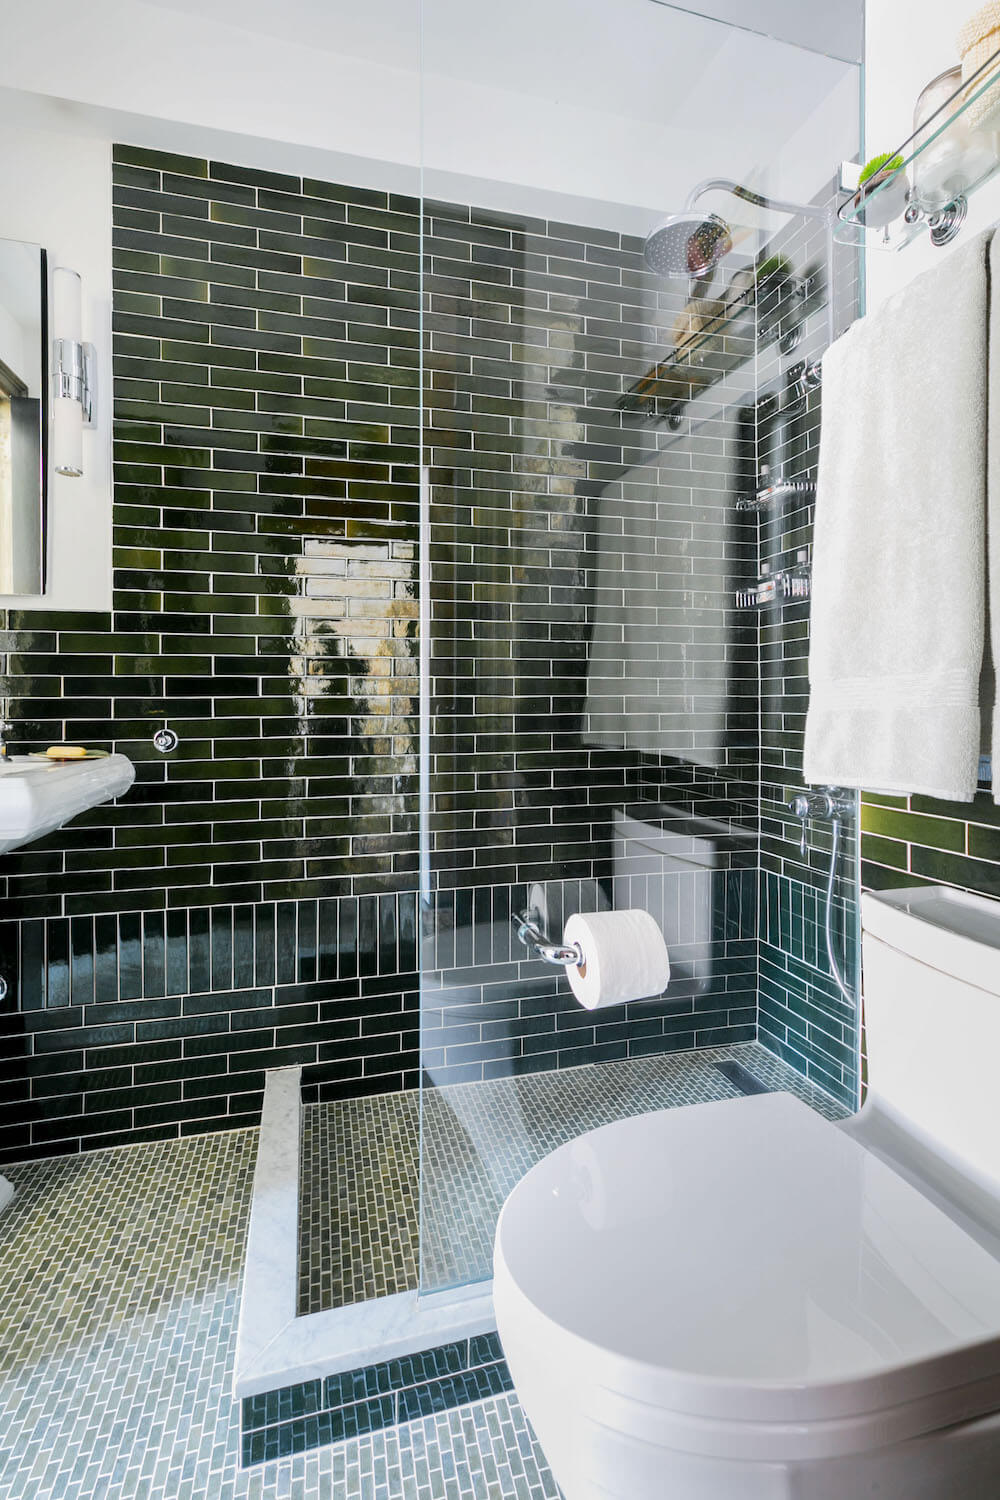 Image of open concept shower and toilet in renovated bathroom